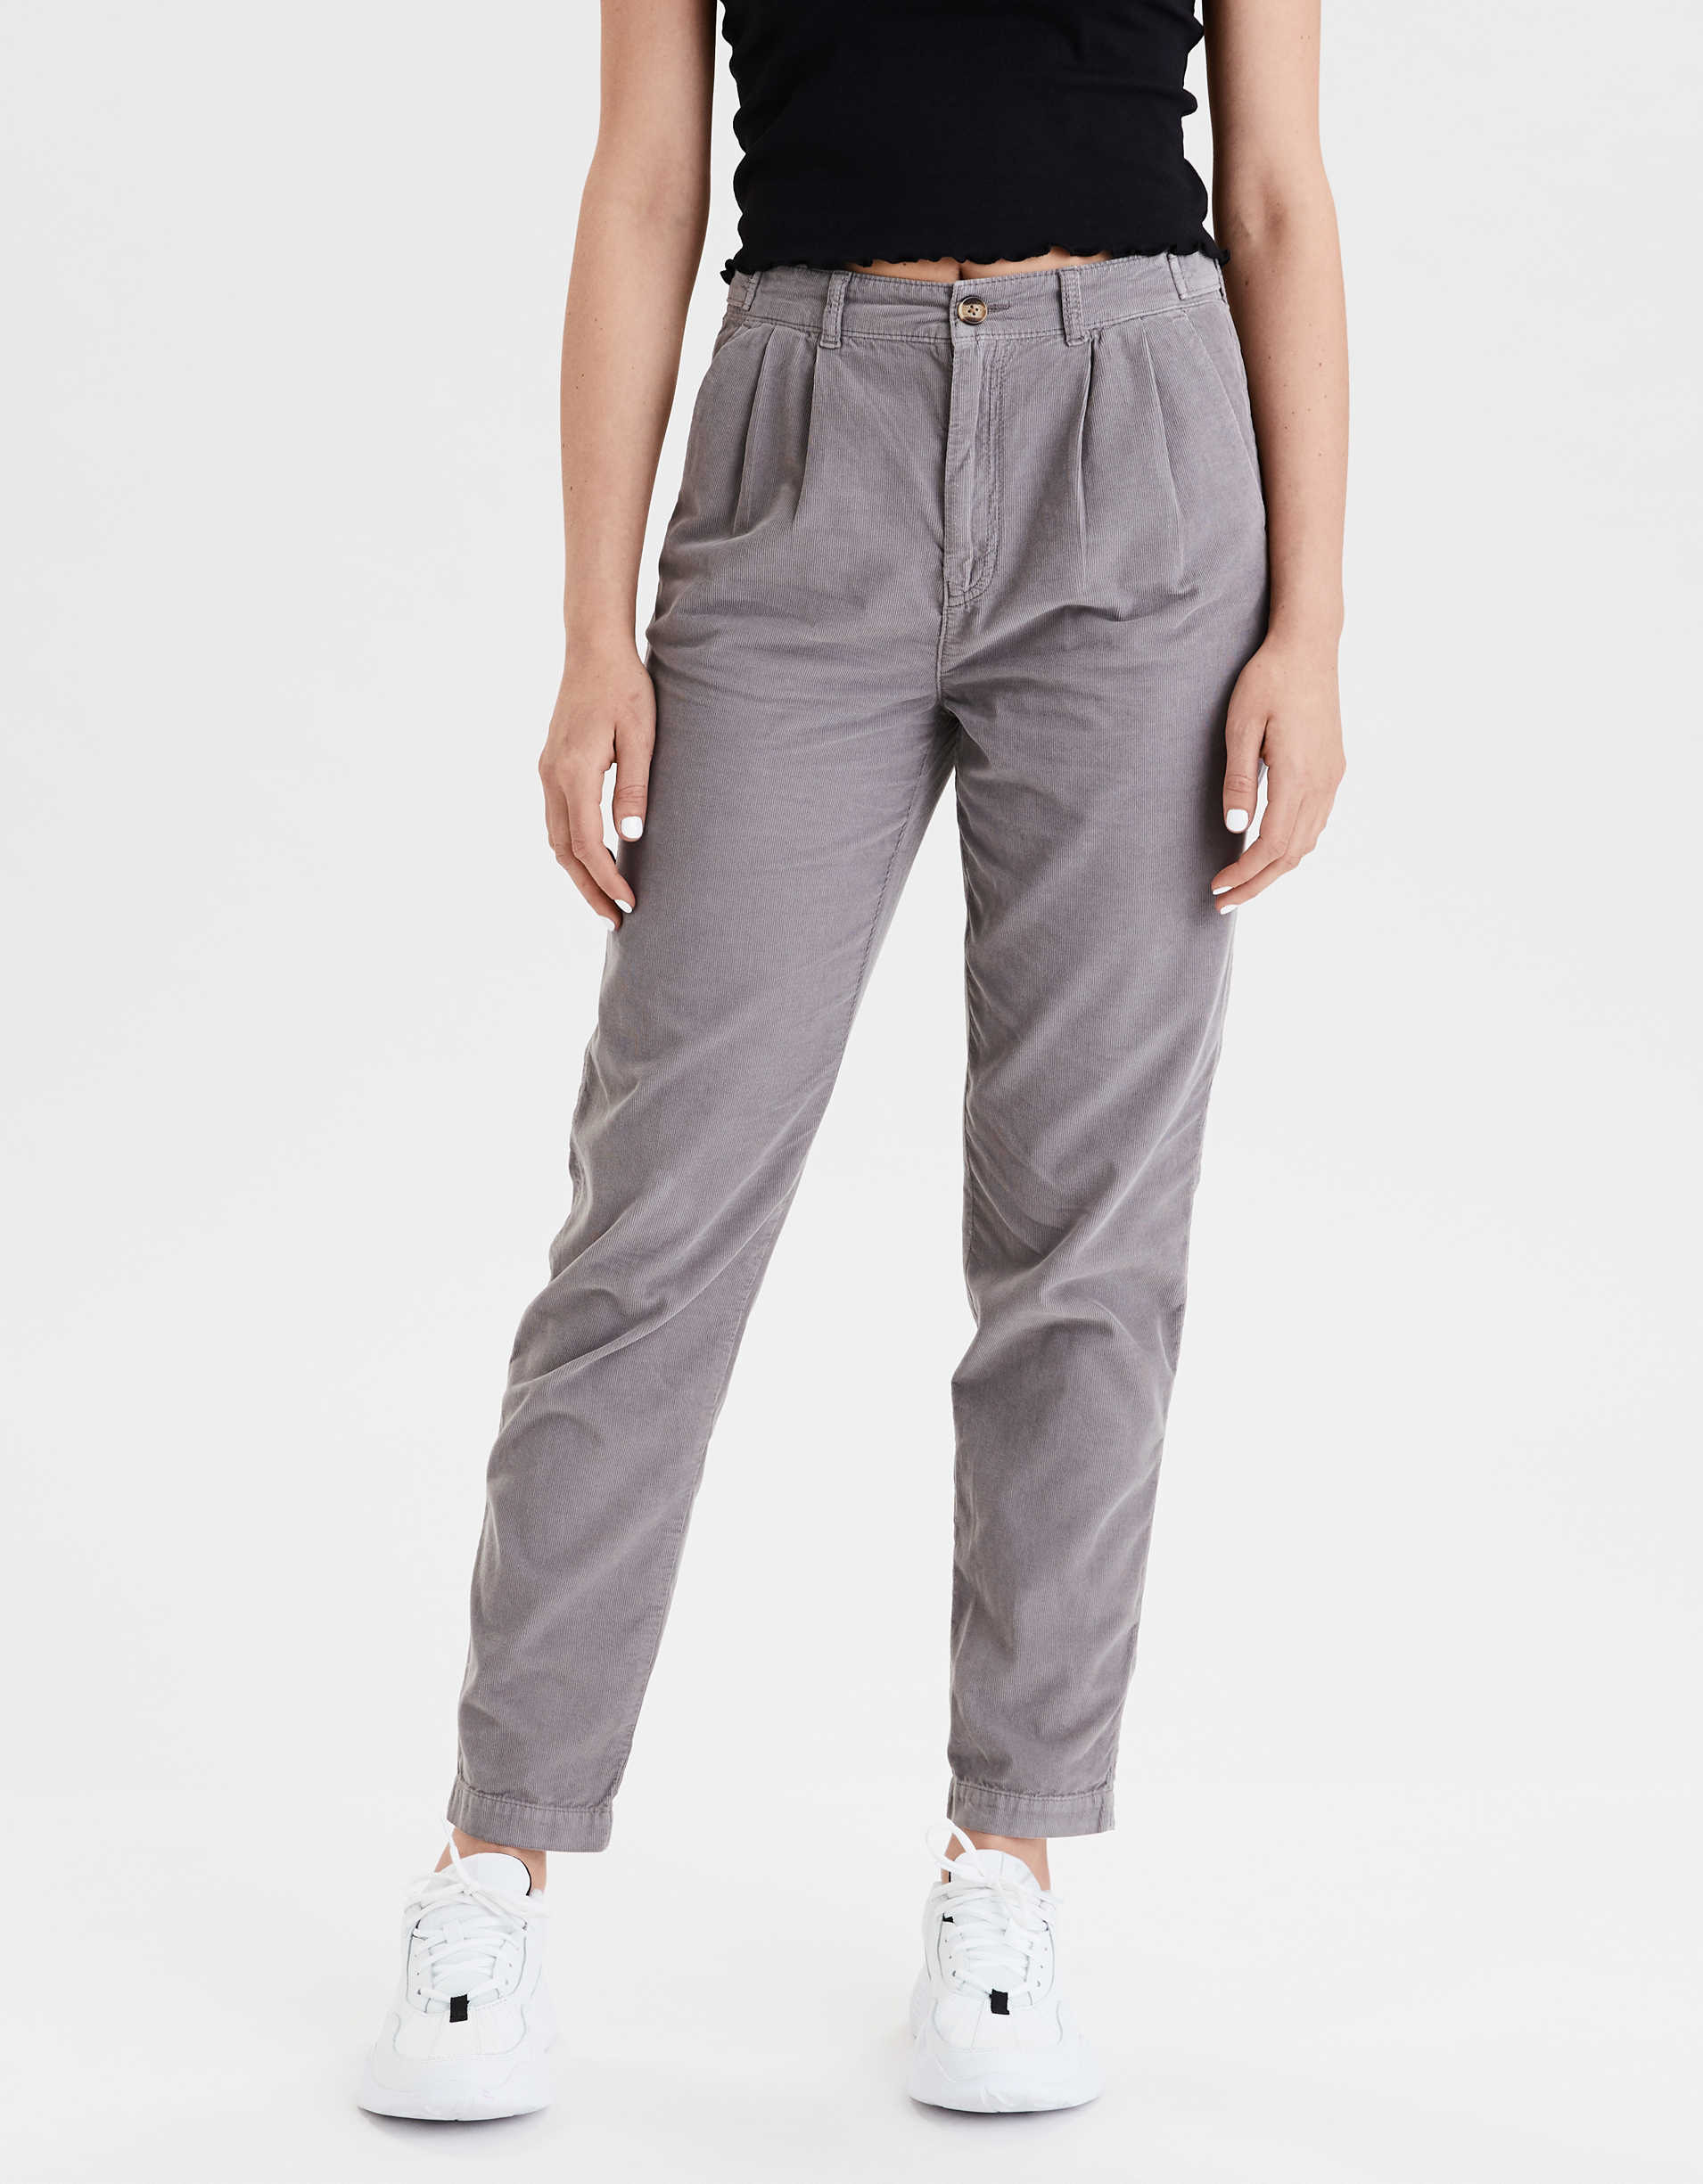 AE Super High-Waisted Tapered Pant